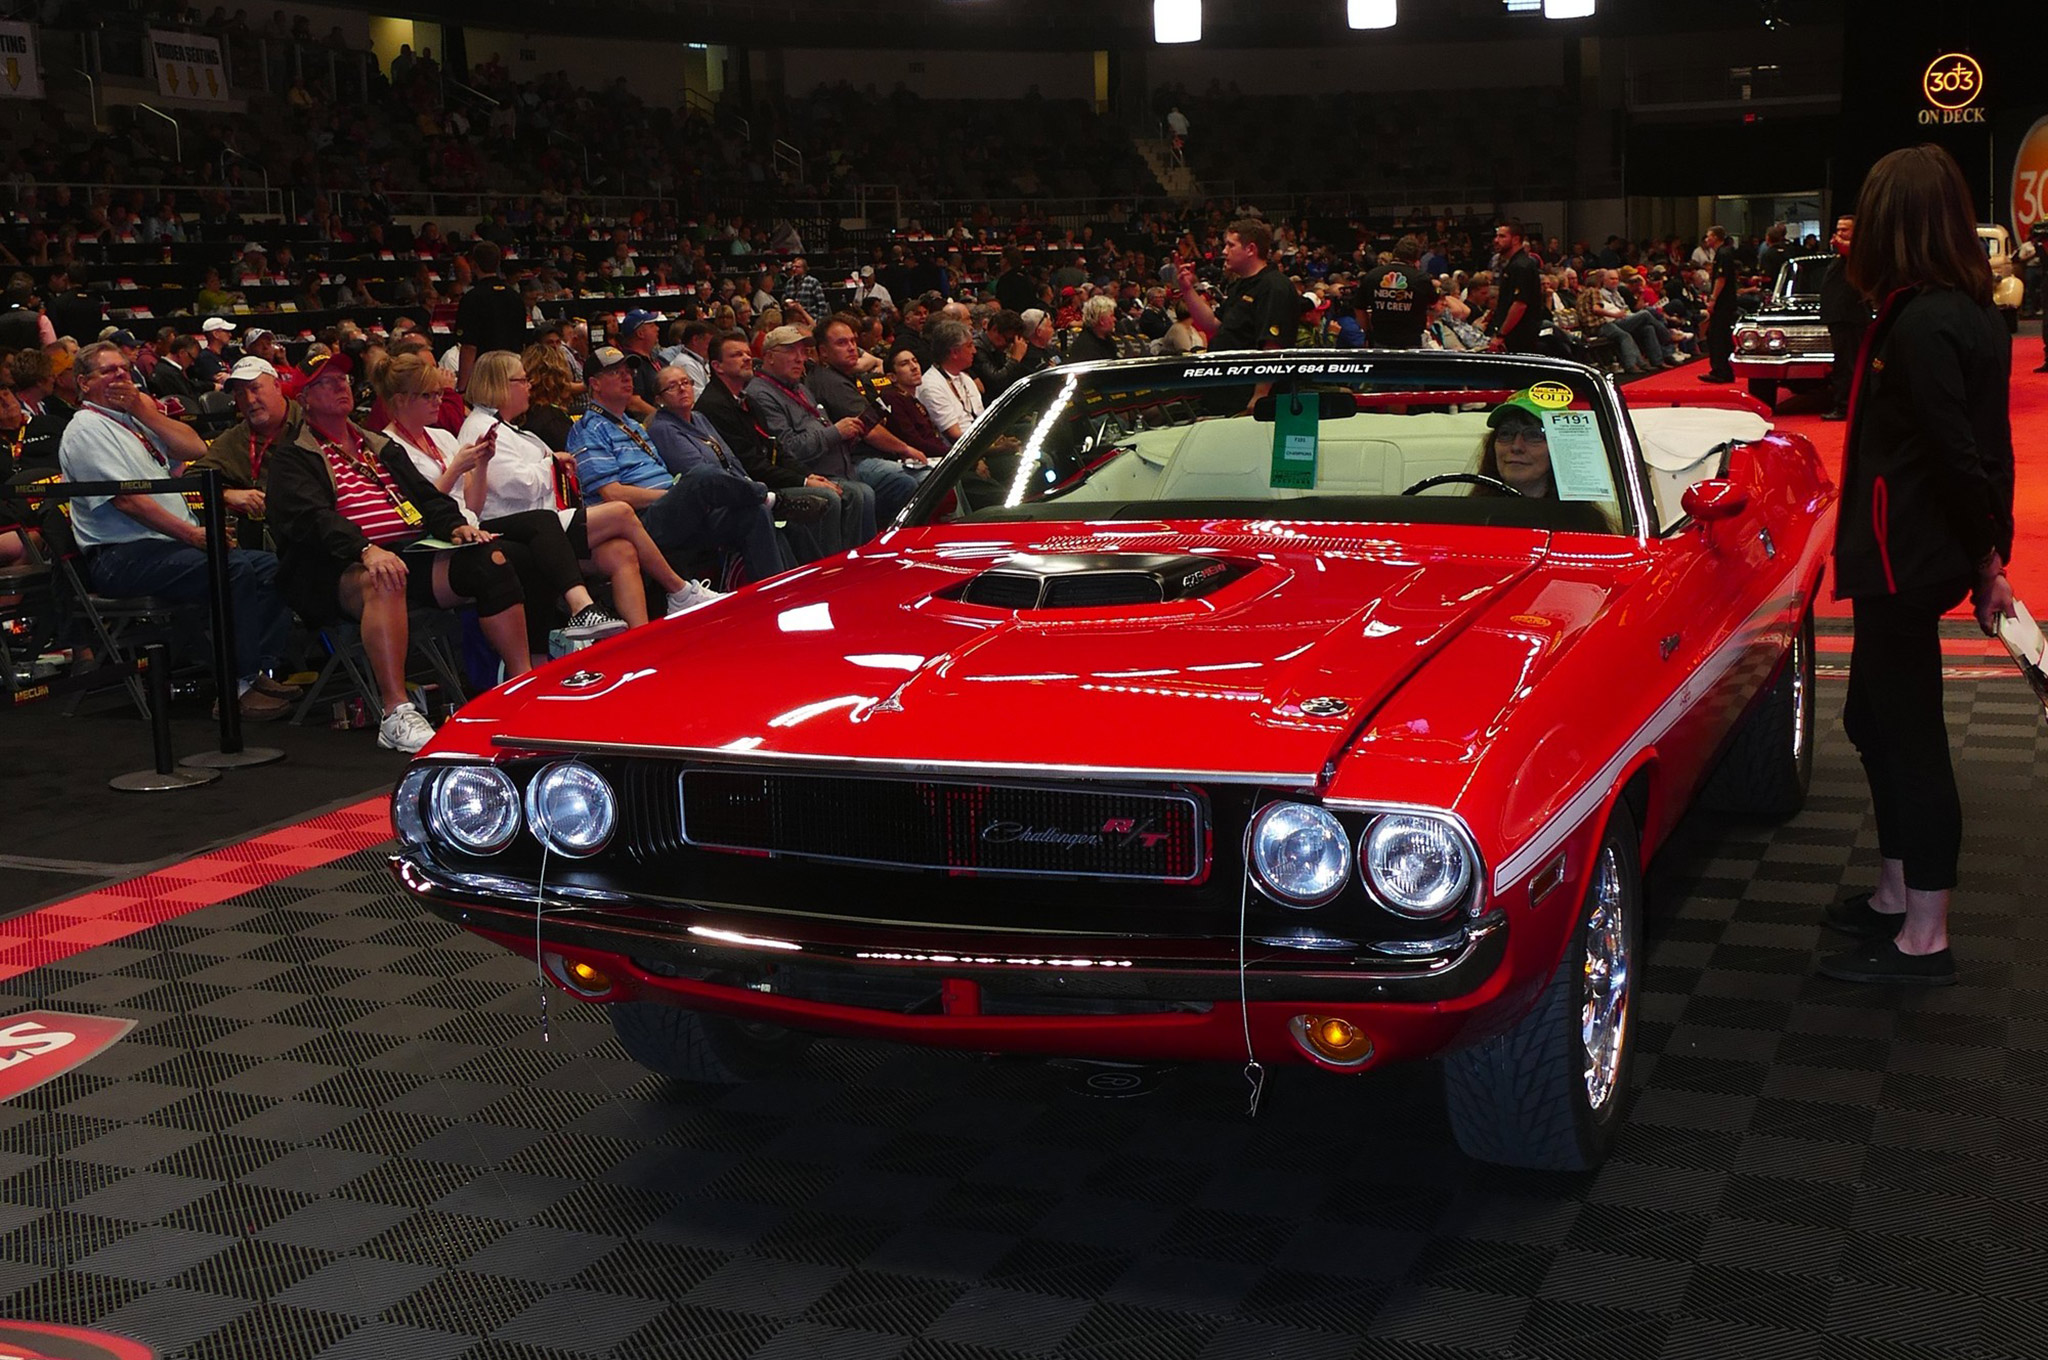 This convertible Challenger R/T was born with a 383 but had some serious upgrades including a Hemi engine; somebody took it home with a final hammer price of $81,000.